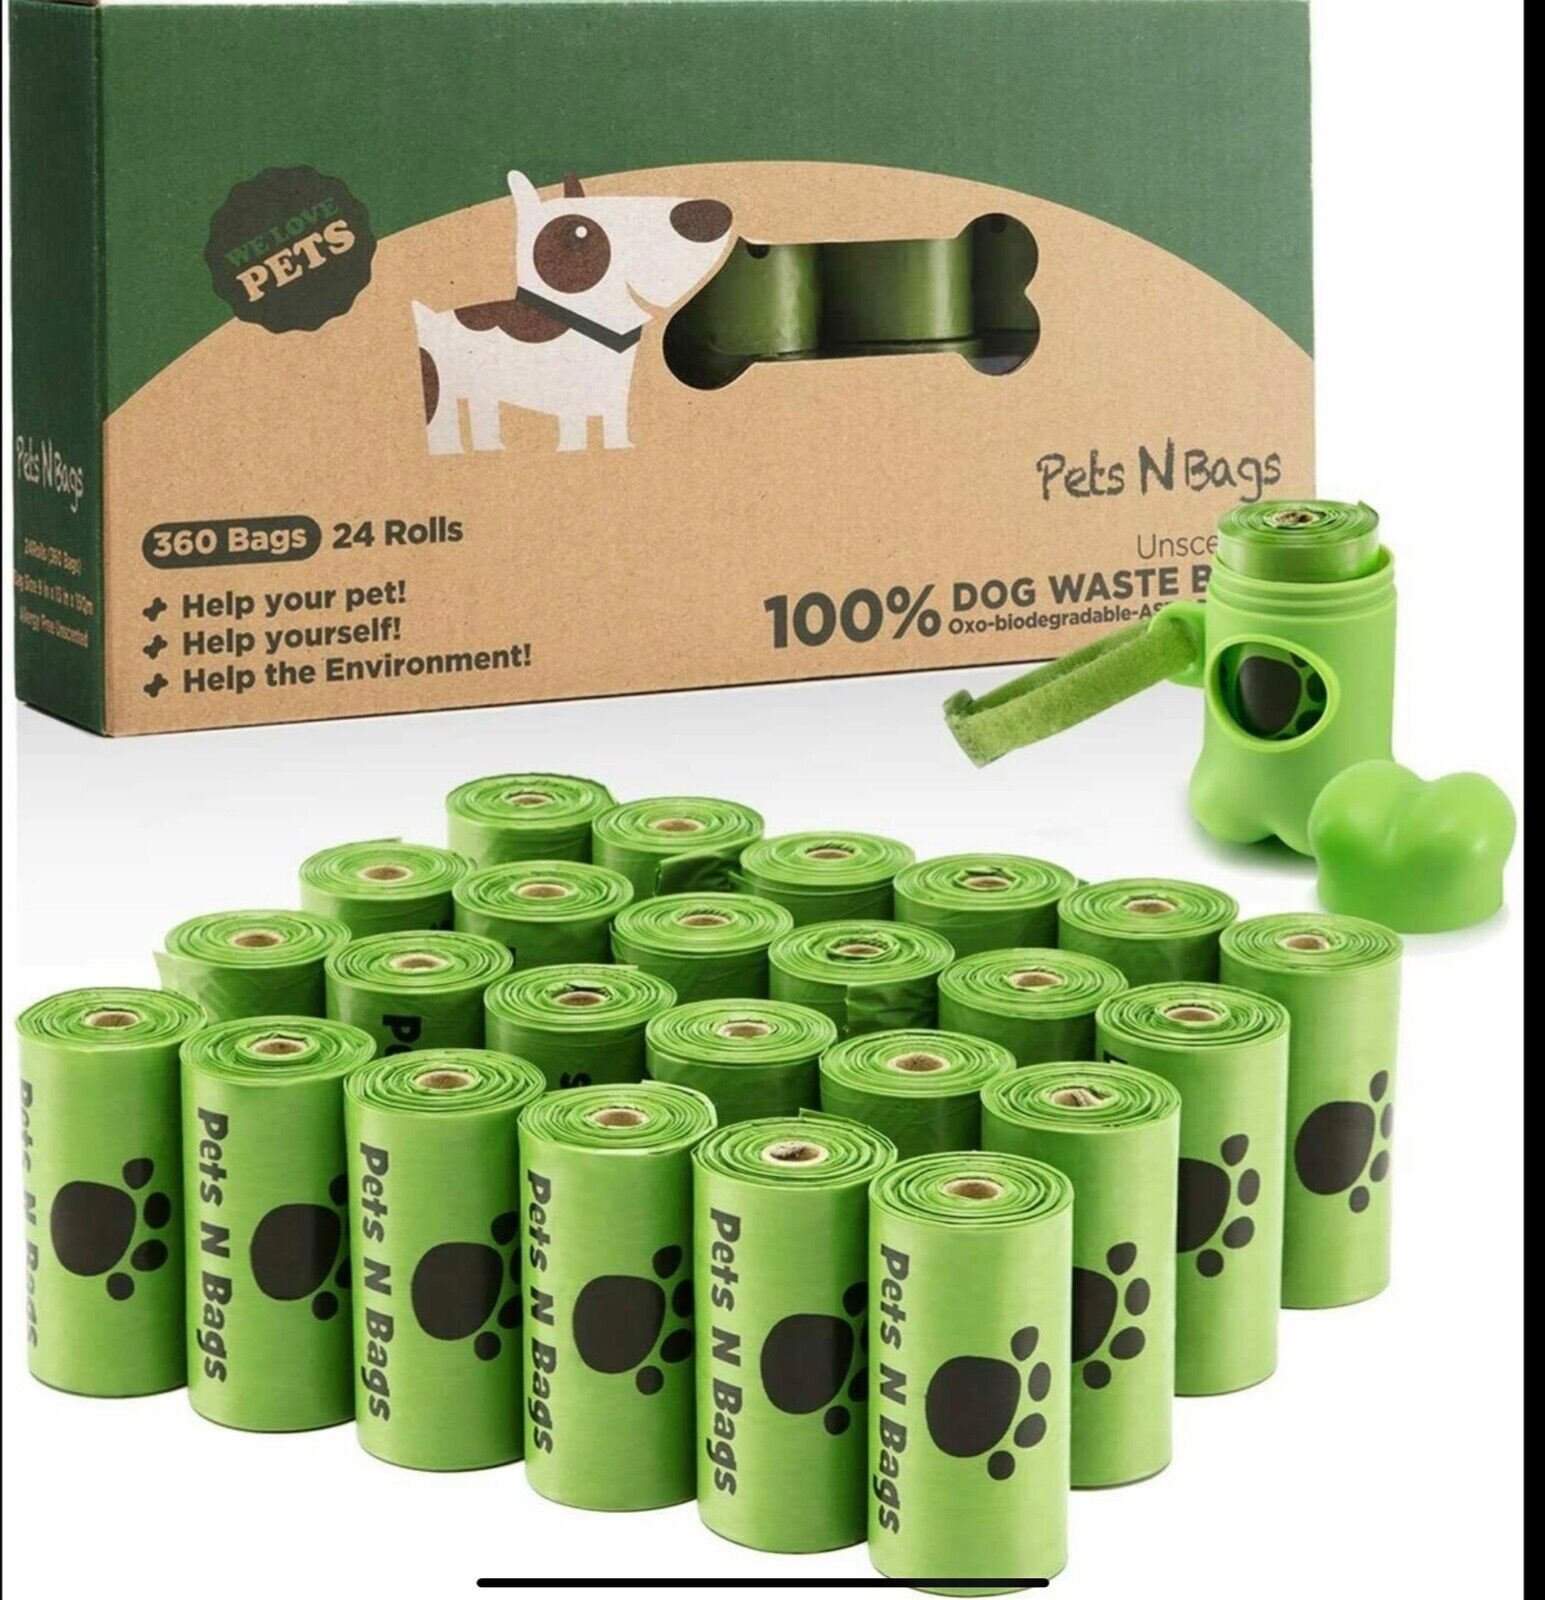 Pets N Bags Dog Poop Waste Bags Biodegradable Unscented Refill Rolls 360 Ct NEW - $9.99